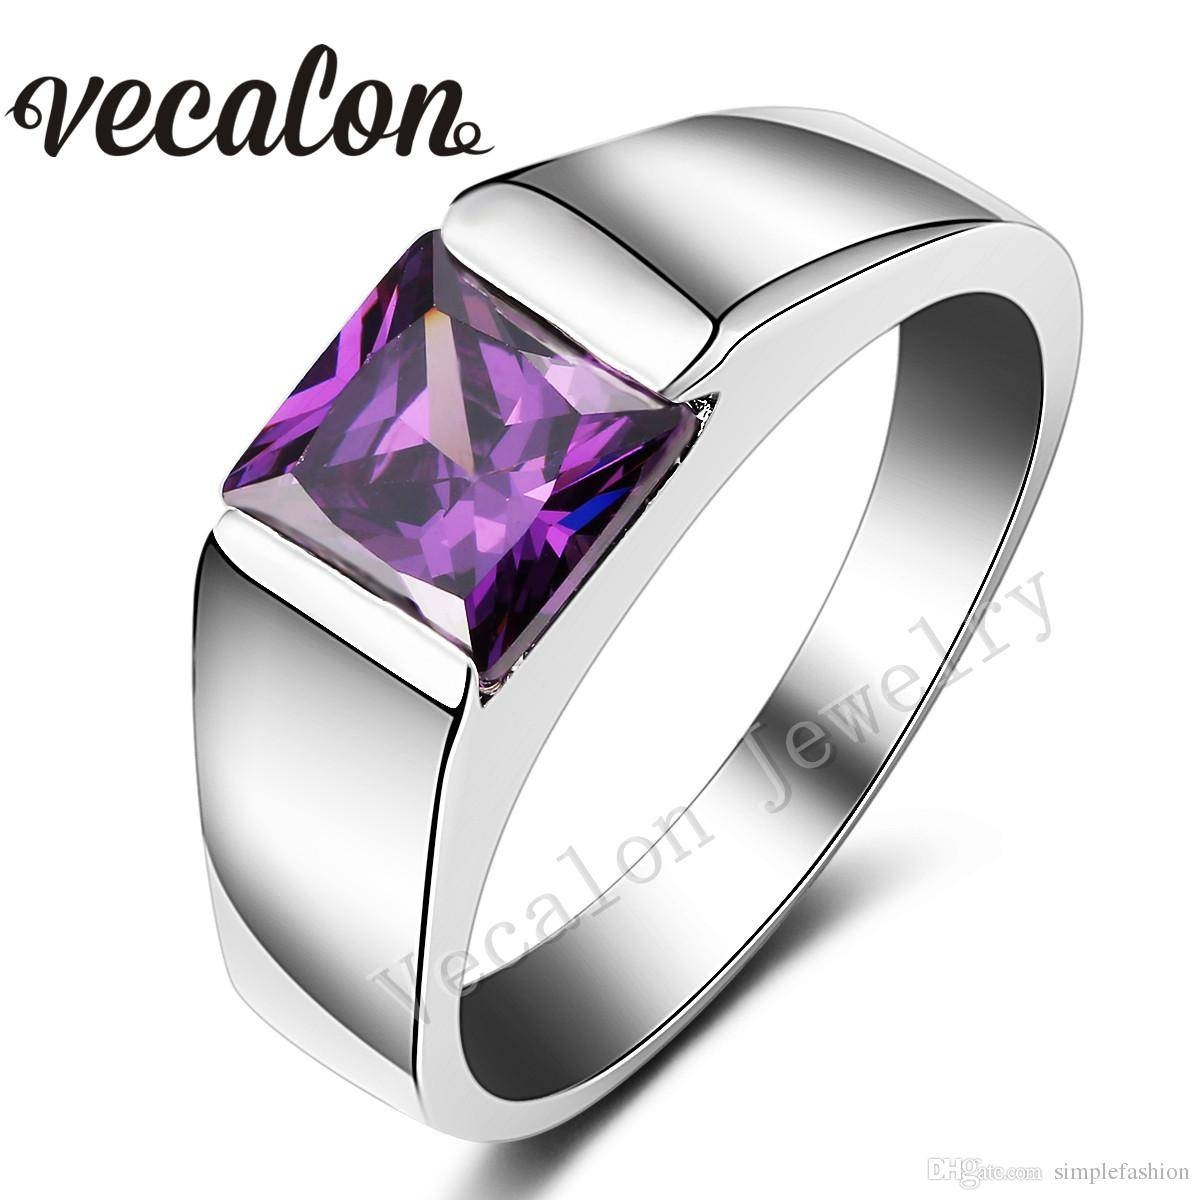 Vecalon Male Jewelry Princess Cut 4ct Amethyst Cz 925 Sterling Intended For Wedding Rings With Amethyst (View 15 of 15)